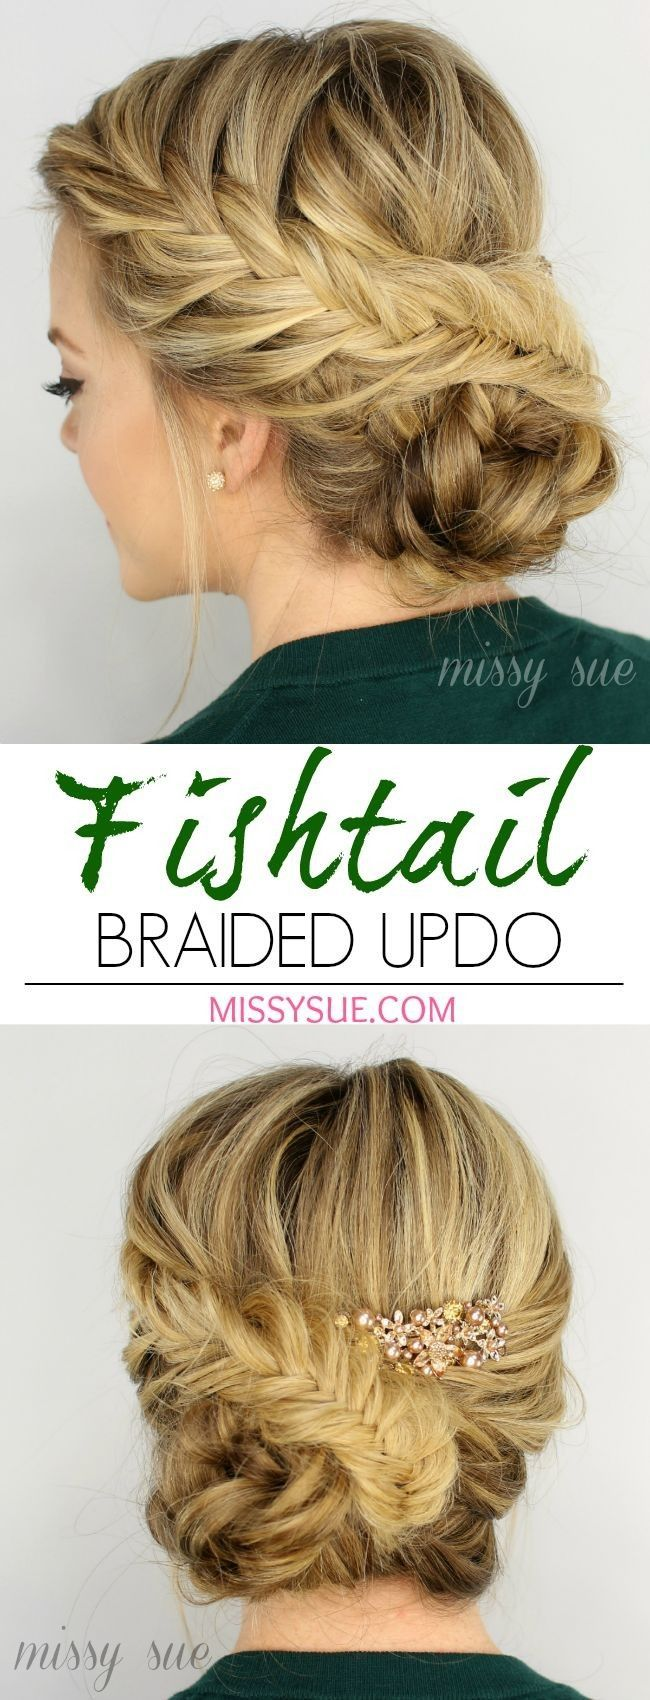 Inspirational Easy Updo Frisuren für mittellanges lockiges Haar – Frisuren Dutt